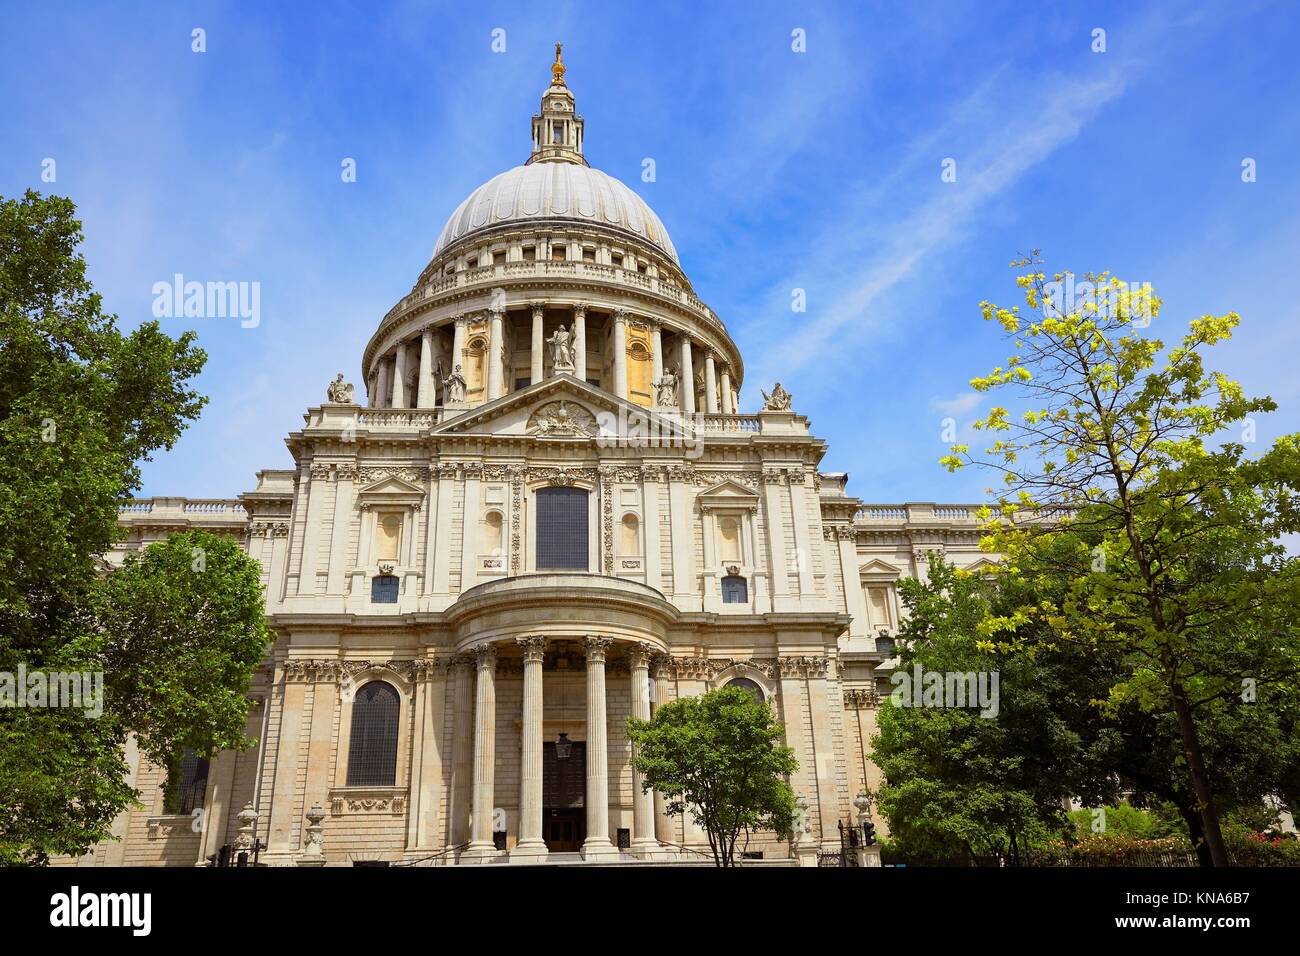 London St Paul Pauls Cathedral facade in England. Stock Photo